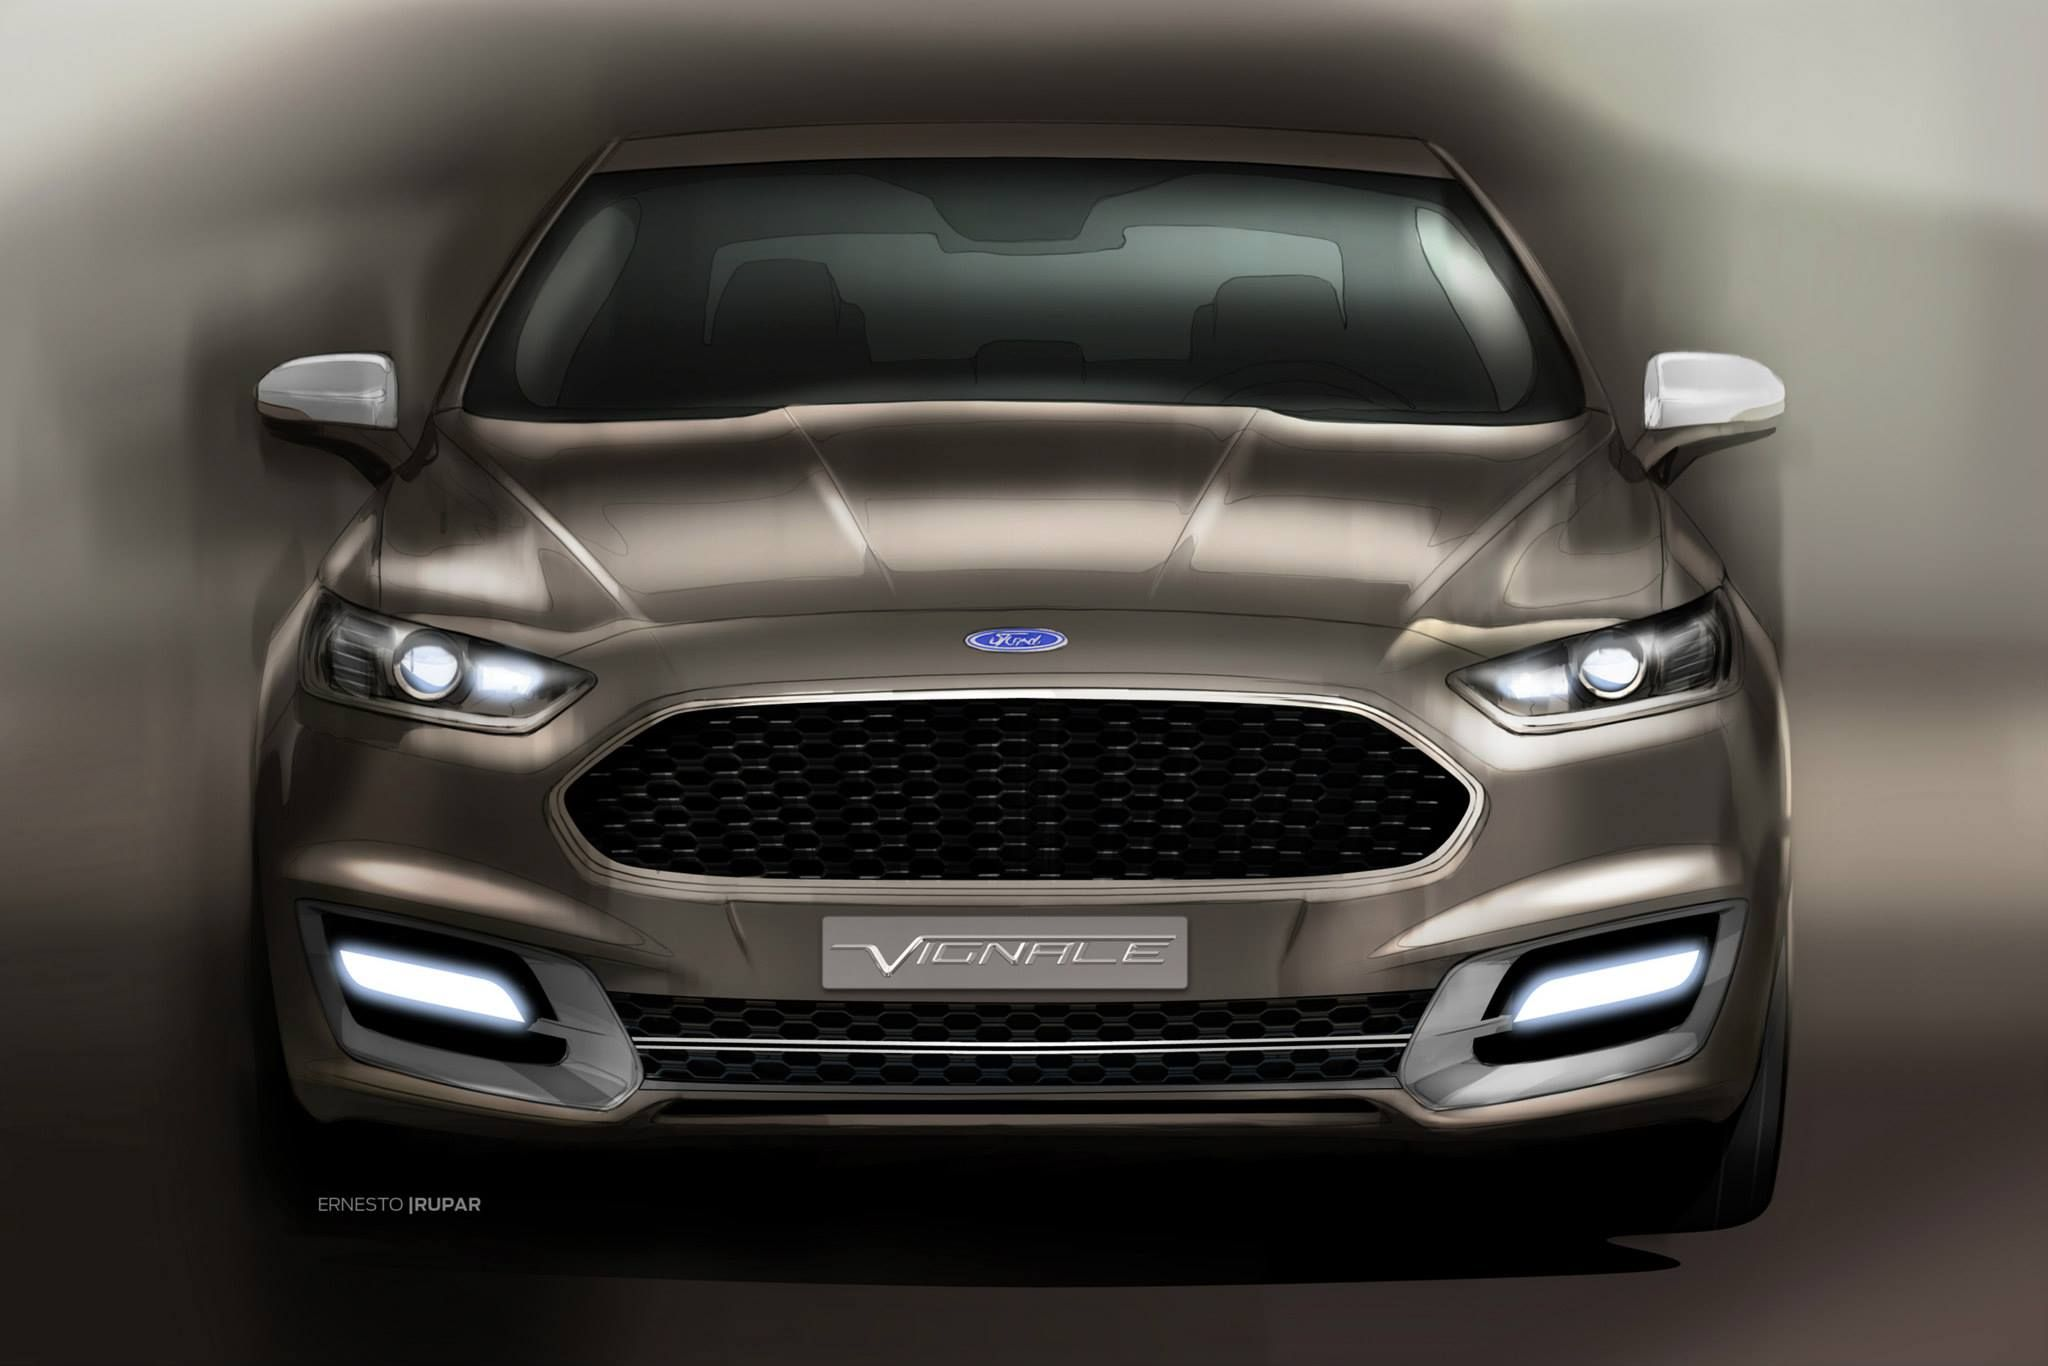 Car Design Ford Iv Facebook Ford Vignale Ford Ford Mondeo